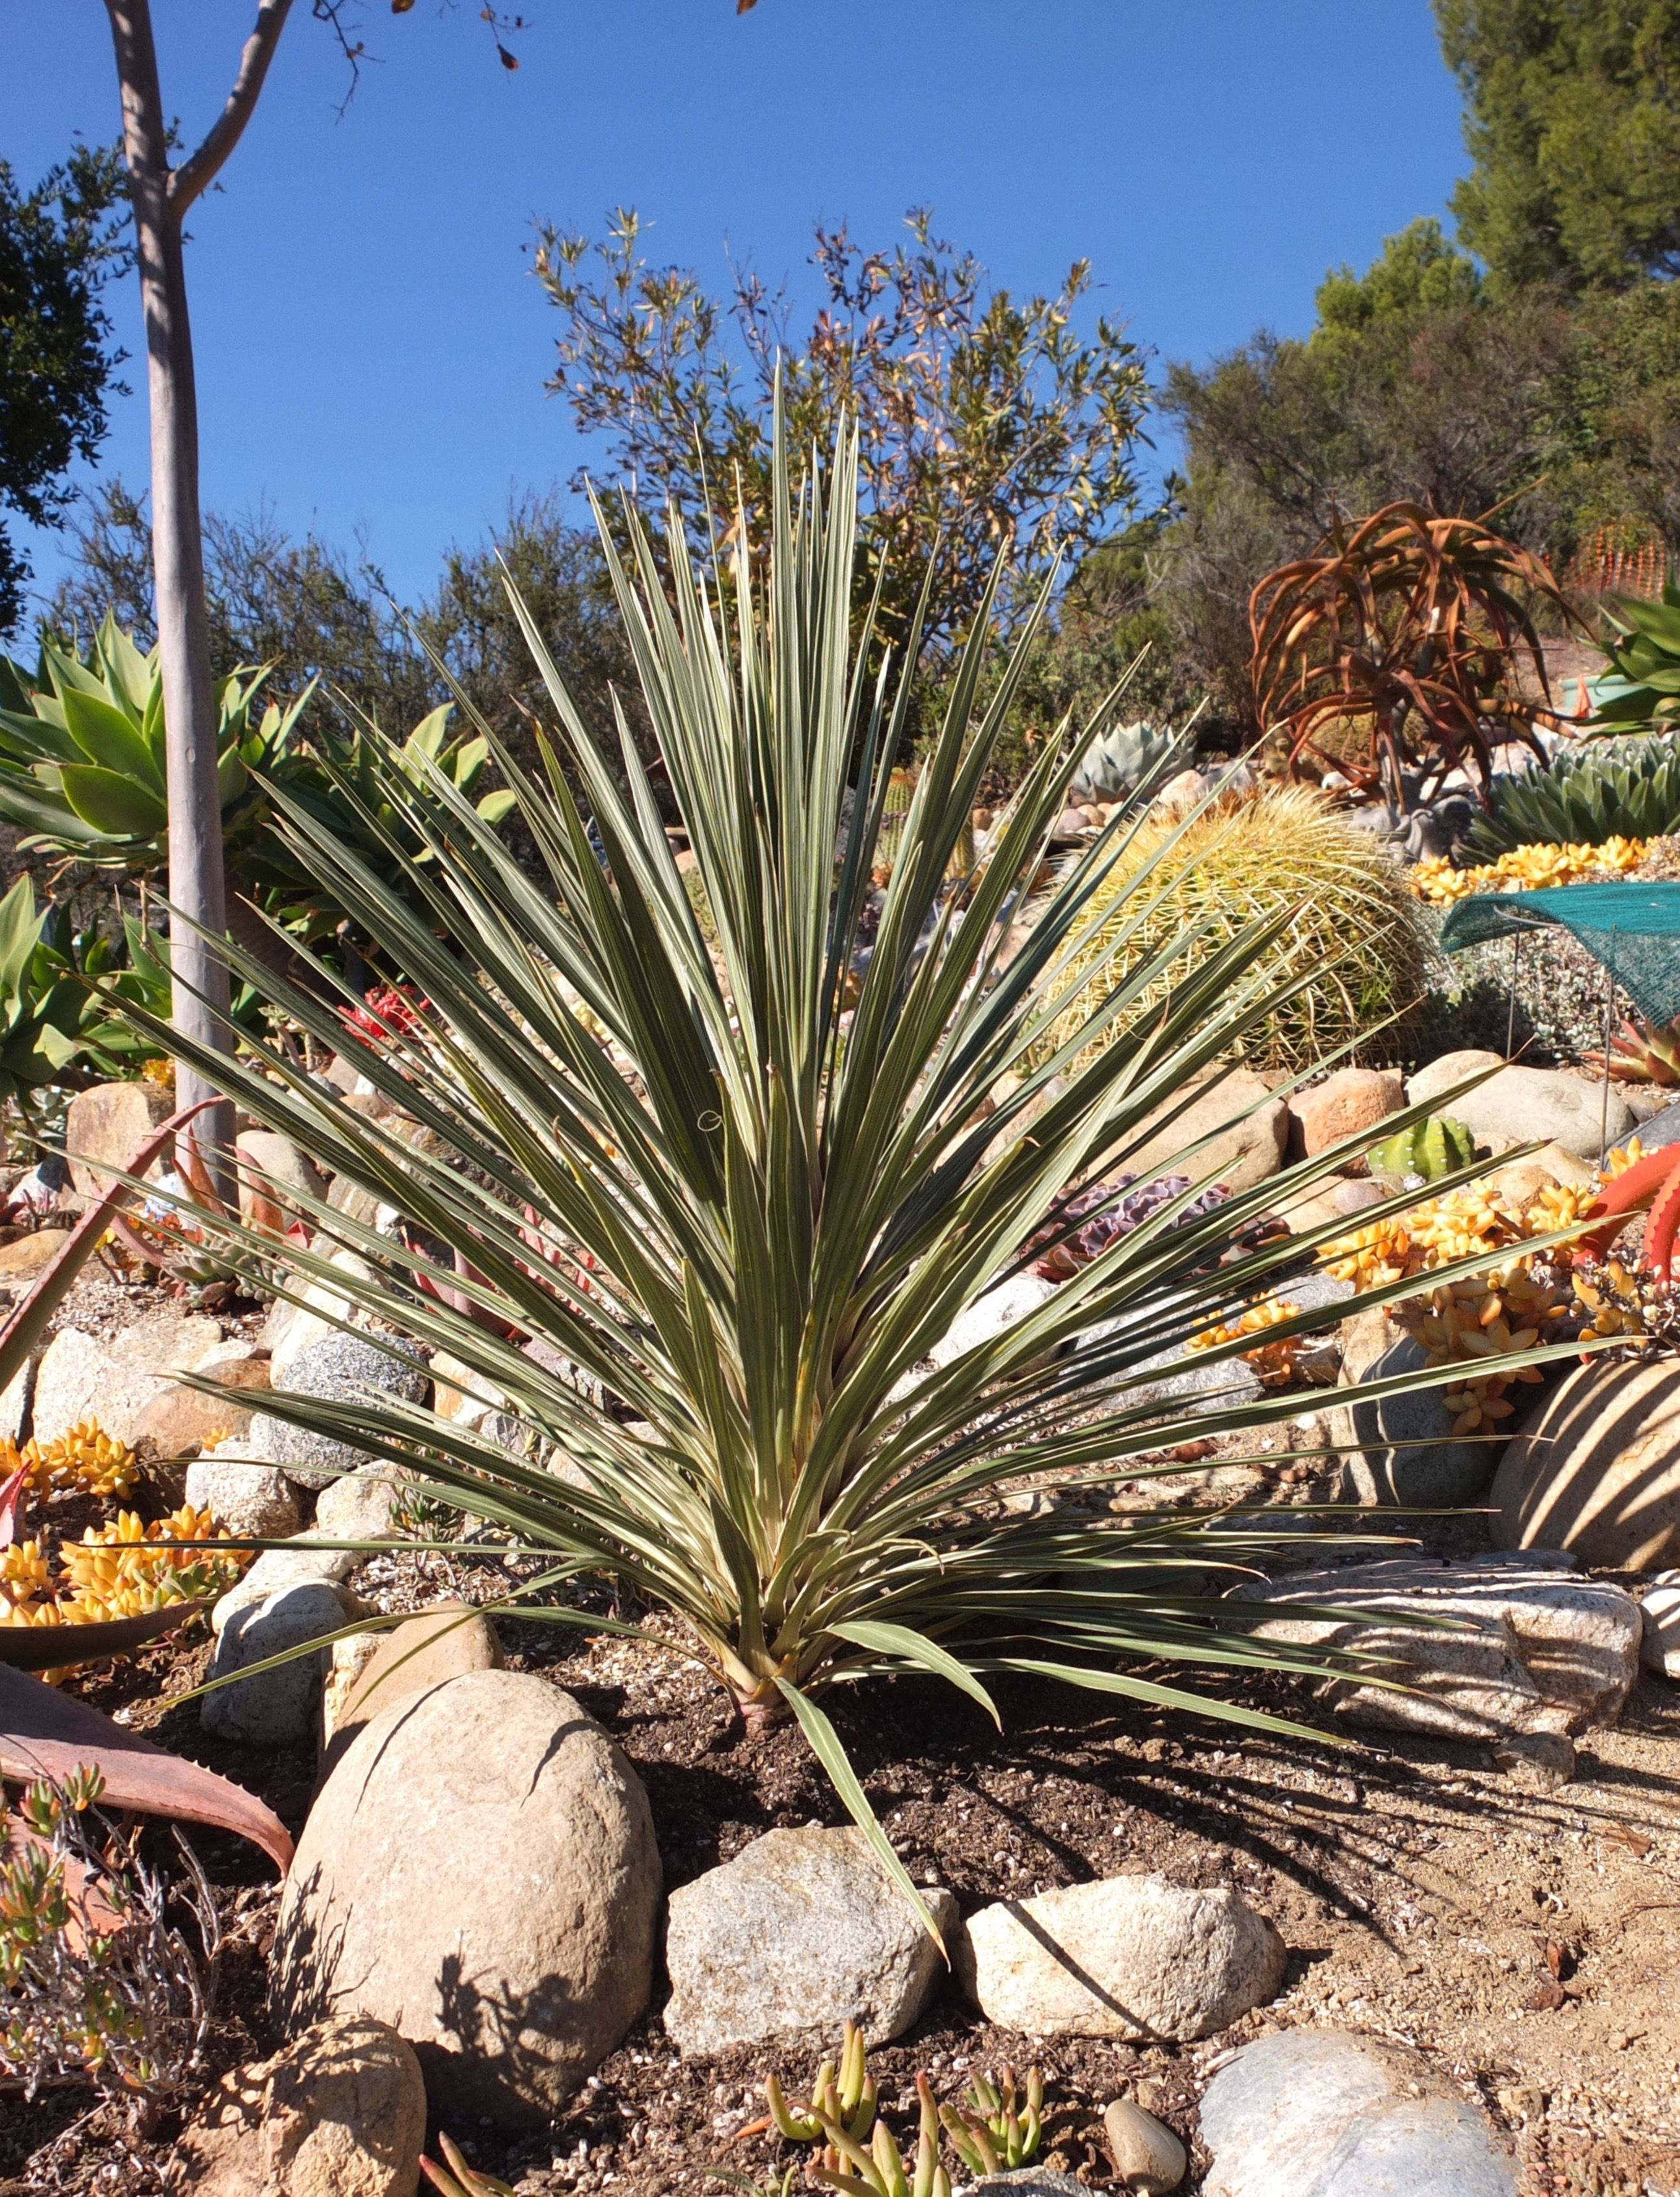 Cordyline Australis Pink Champagne Slow Growing To 6 Tall By 3 Wide Sun To Part Shade Small White Jasmine Scented Flowers In Plants Xeriscape Hardscape